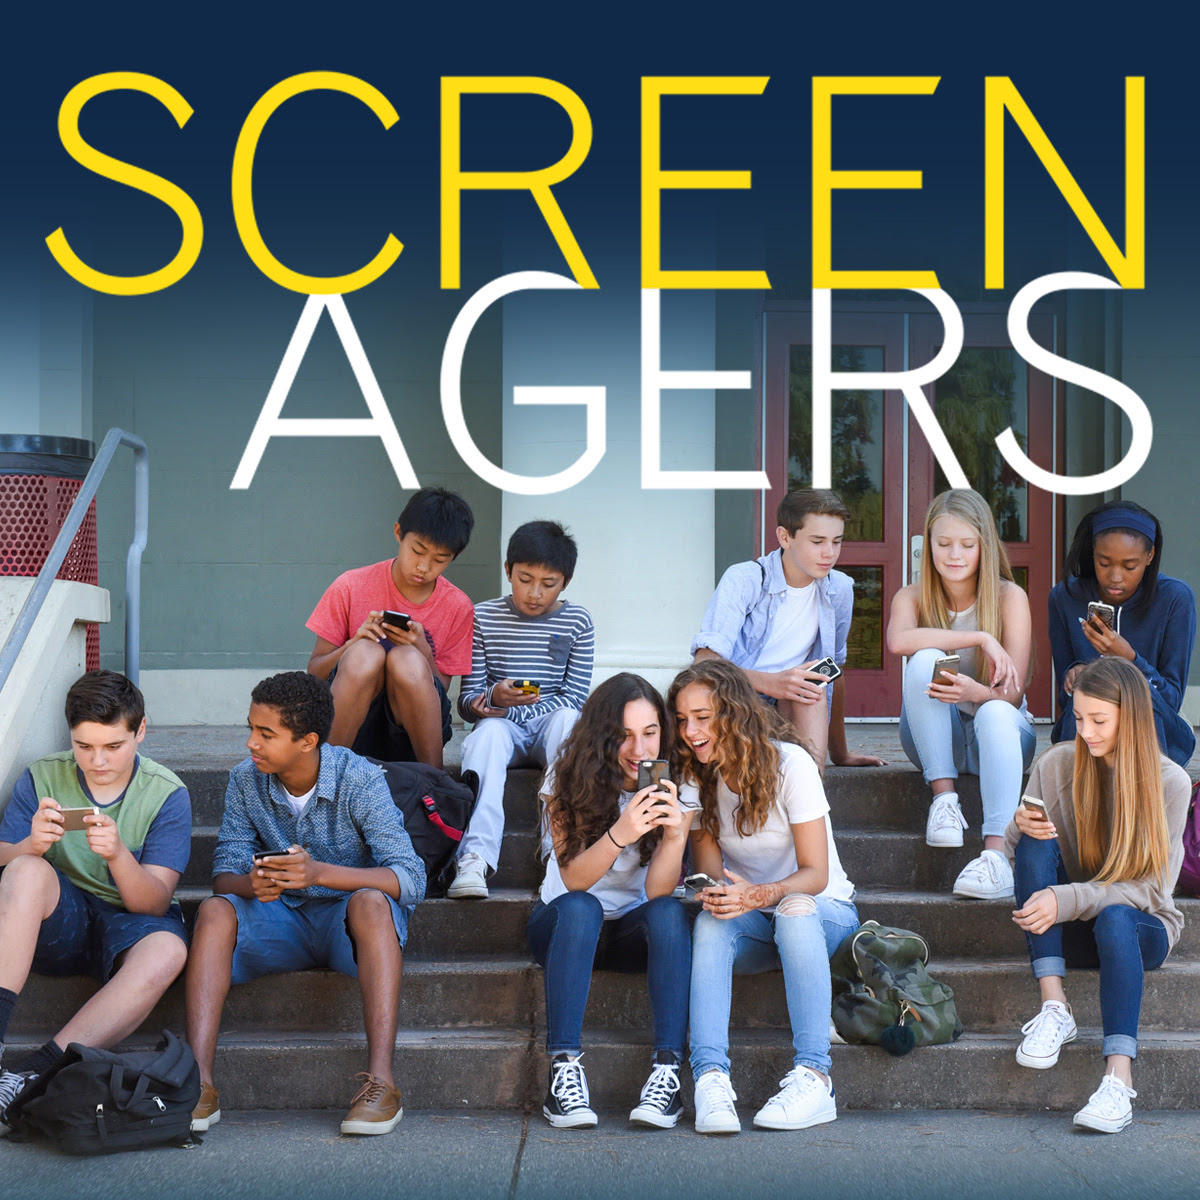 Screenagers Film Presented By The St. Luke's PTL